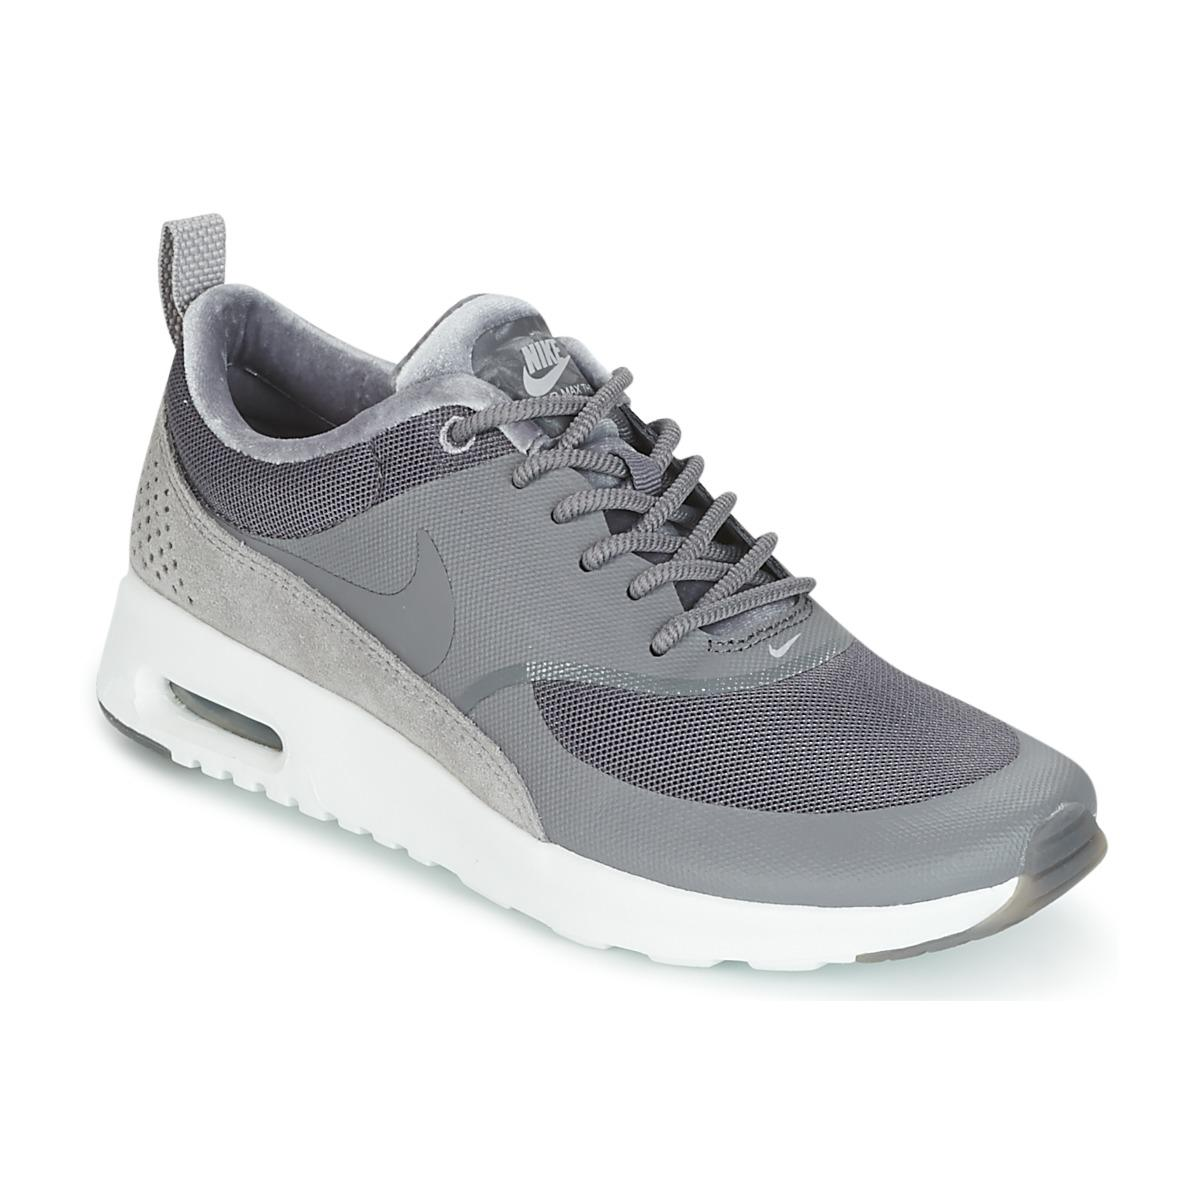 47386a893a878 Nike Air Max Thea Lx W Women s Shoes (trainers) In Grey in Gray - Lyst